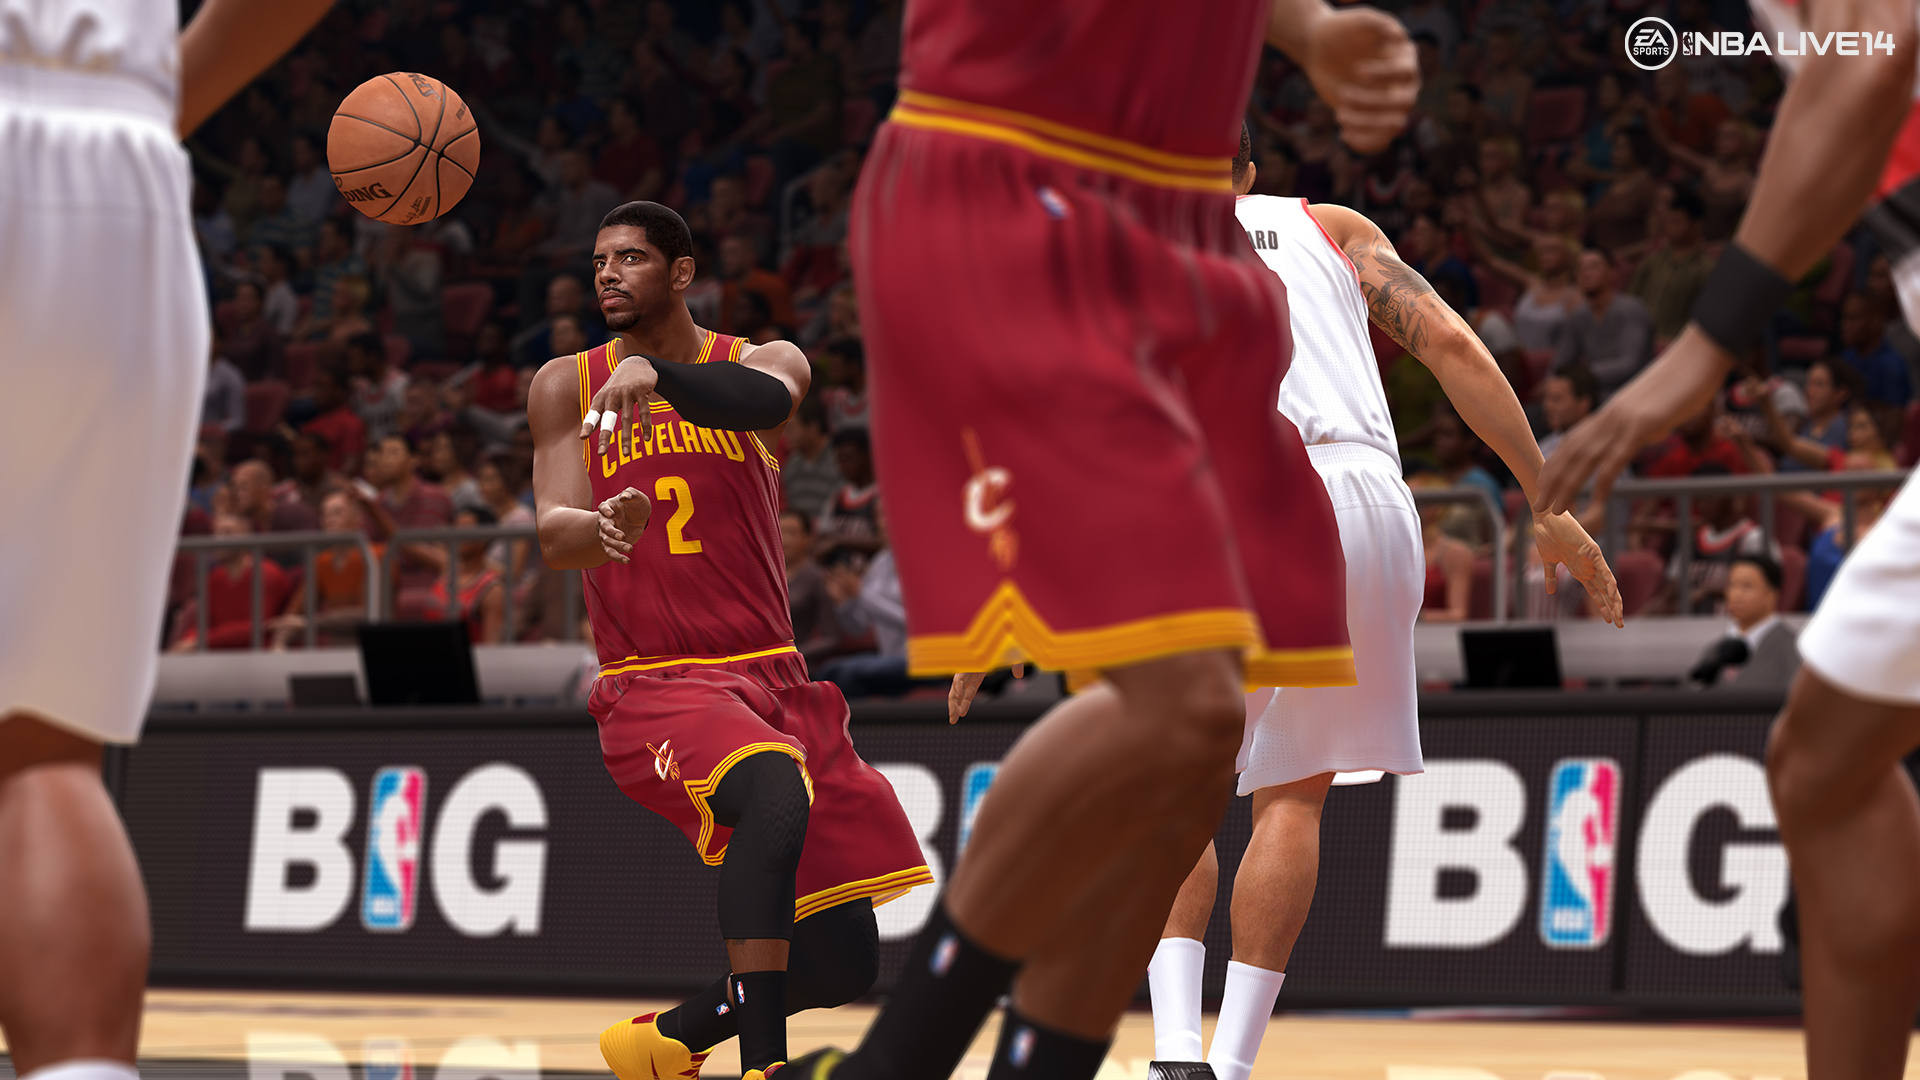 NBA Live 14s Title Describes Its Developers Philosophy